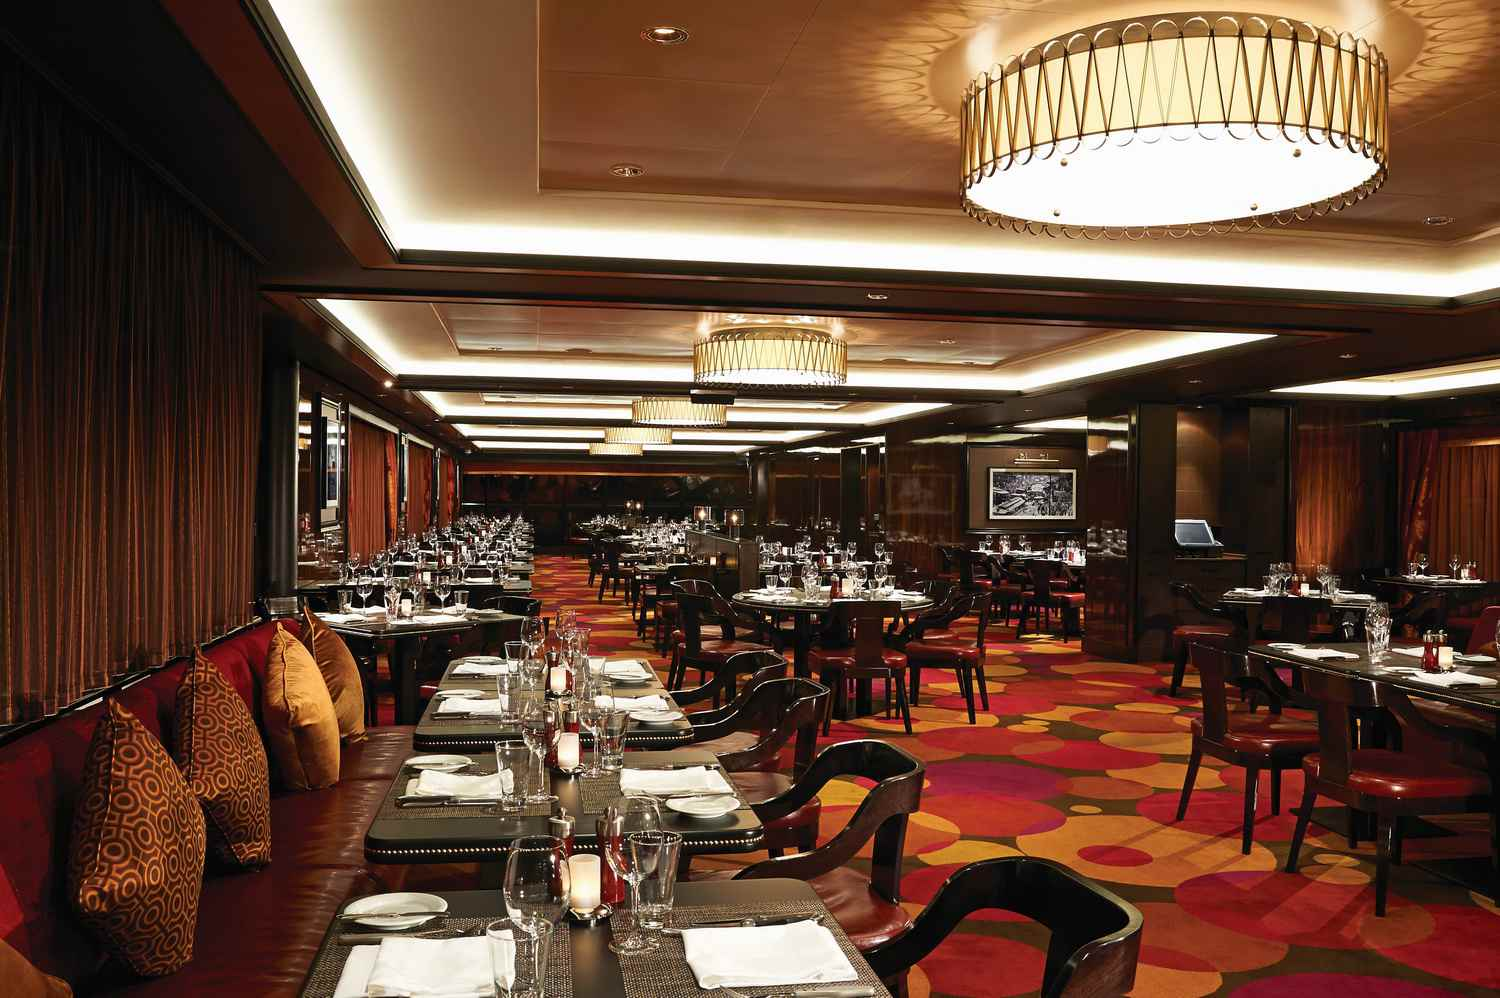 Cagney's Steakhouse on the Norwegian Getaway